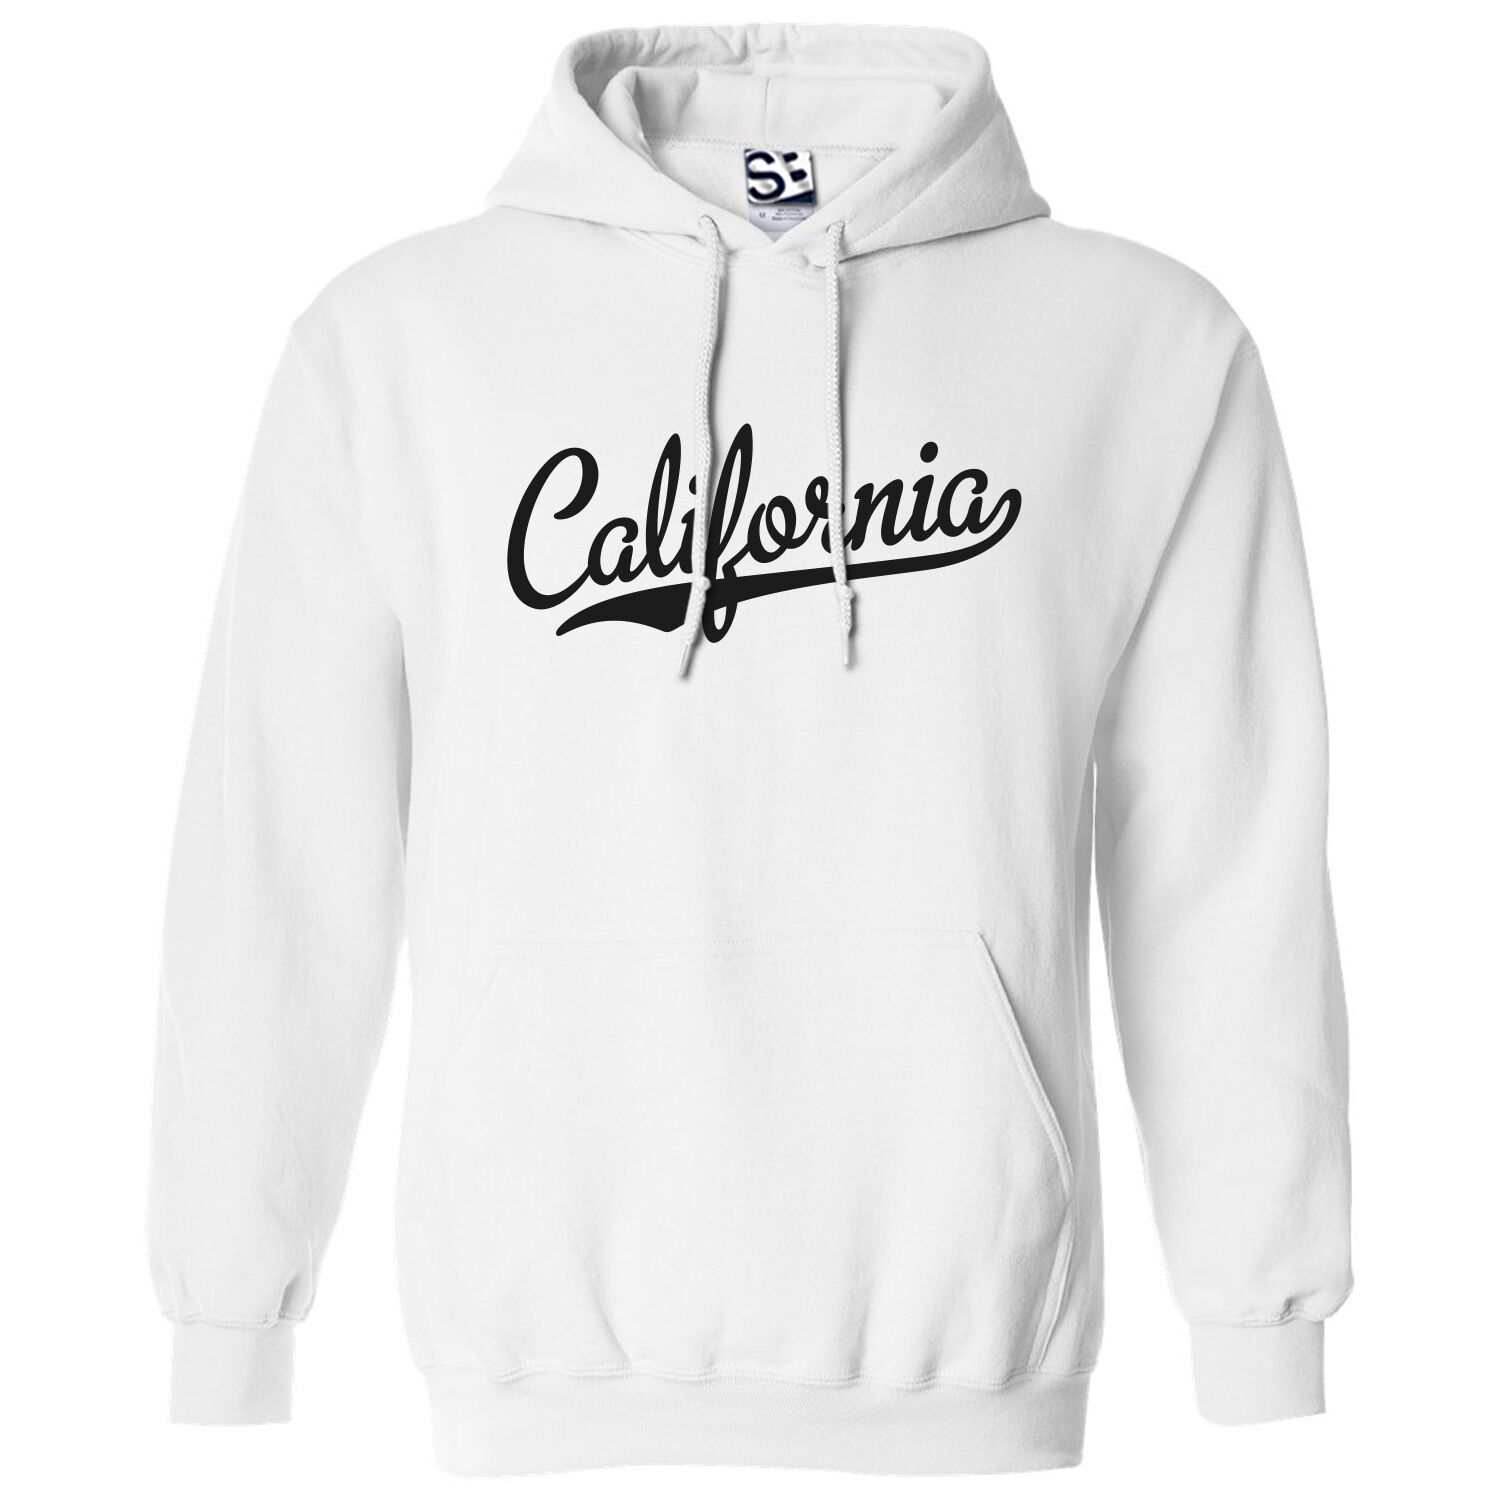 California Script & Tail HOODIE - Hooded Republic Team Sweatshirt - All Farbes